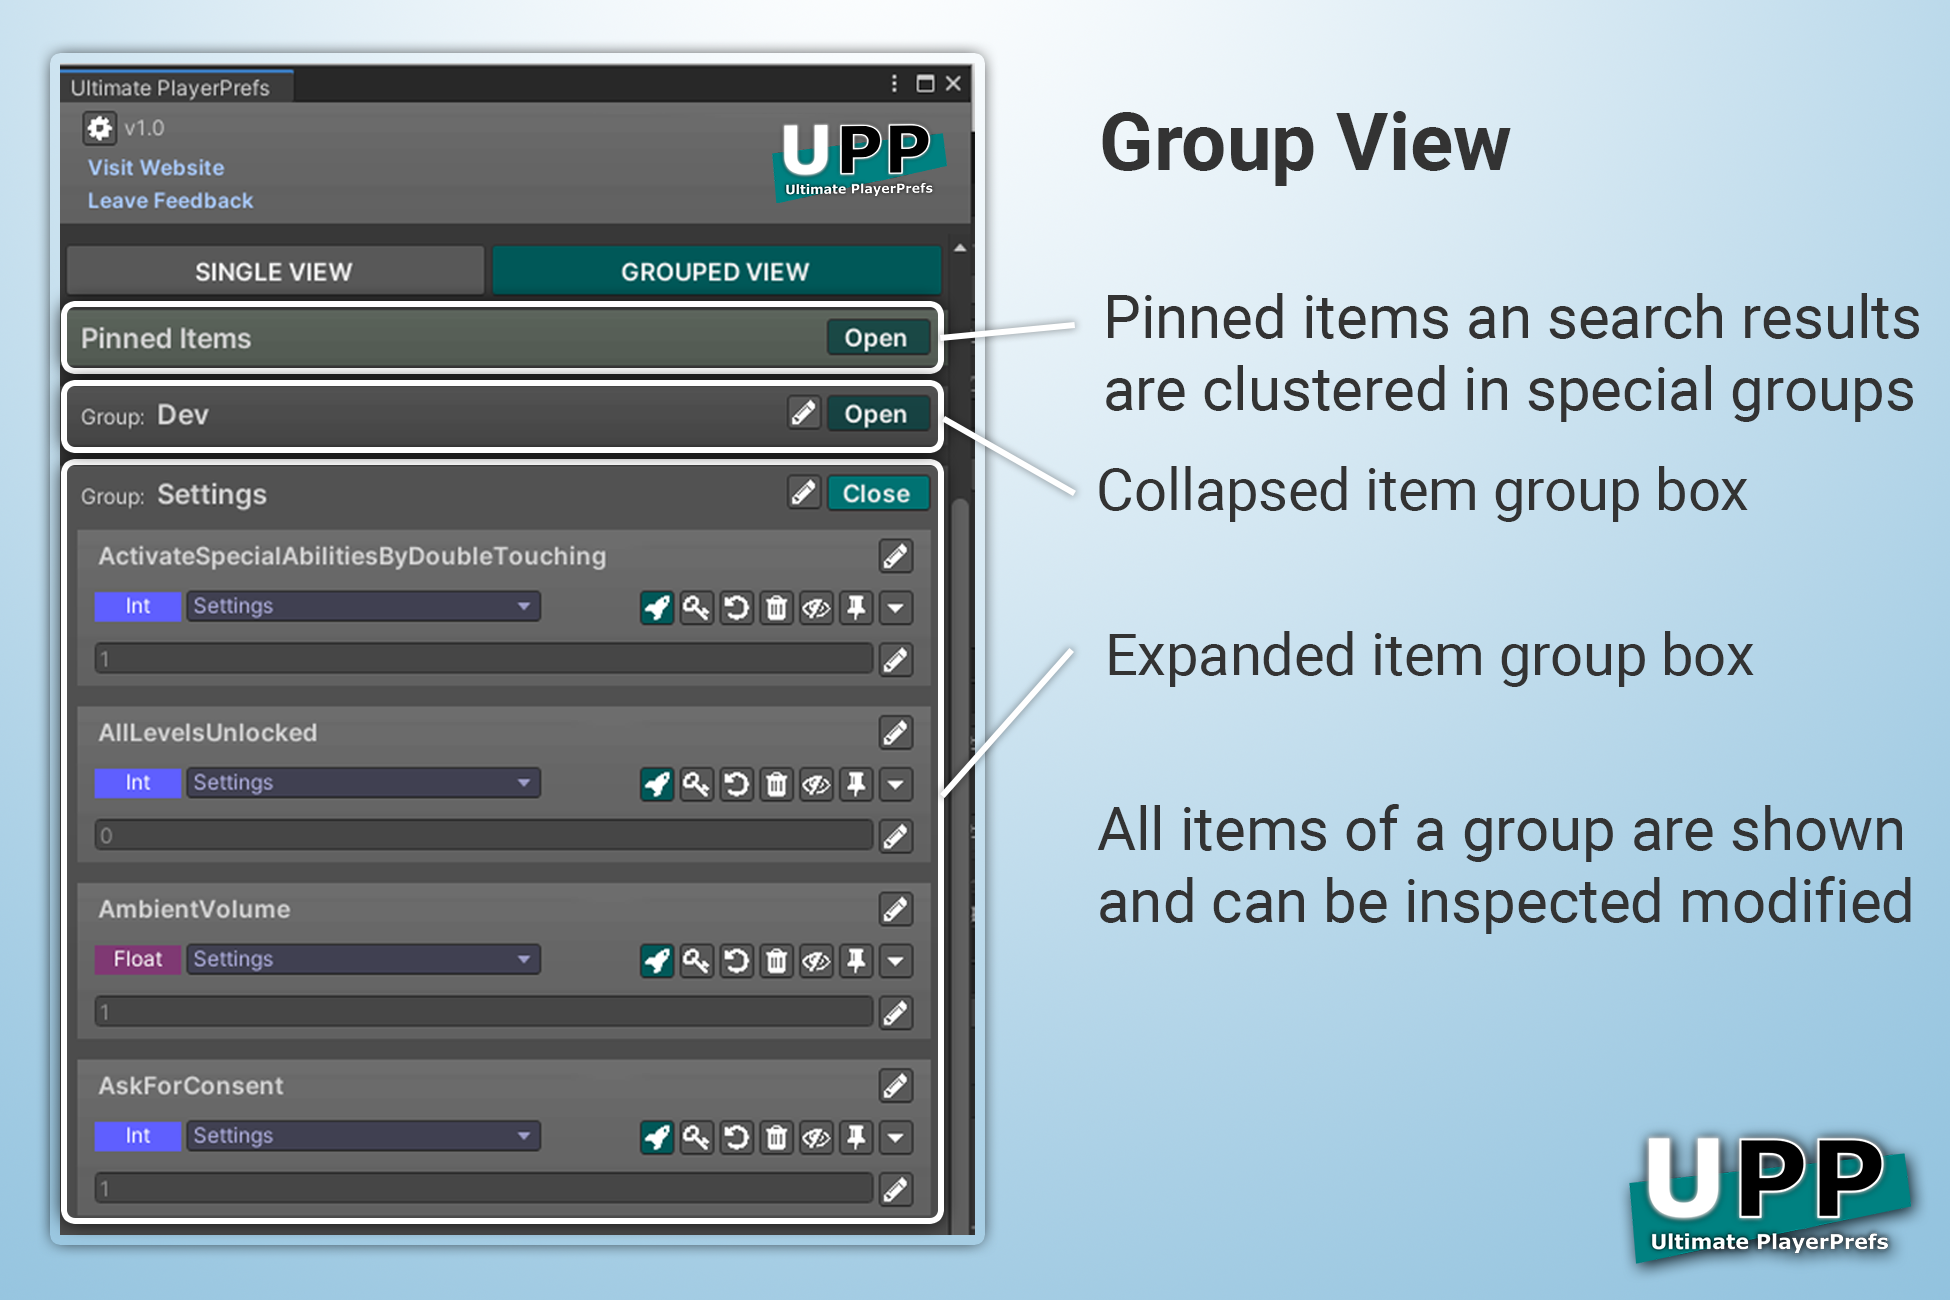 ultimate-playerprefs_group-view.png